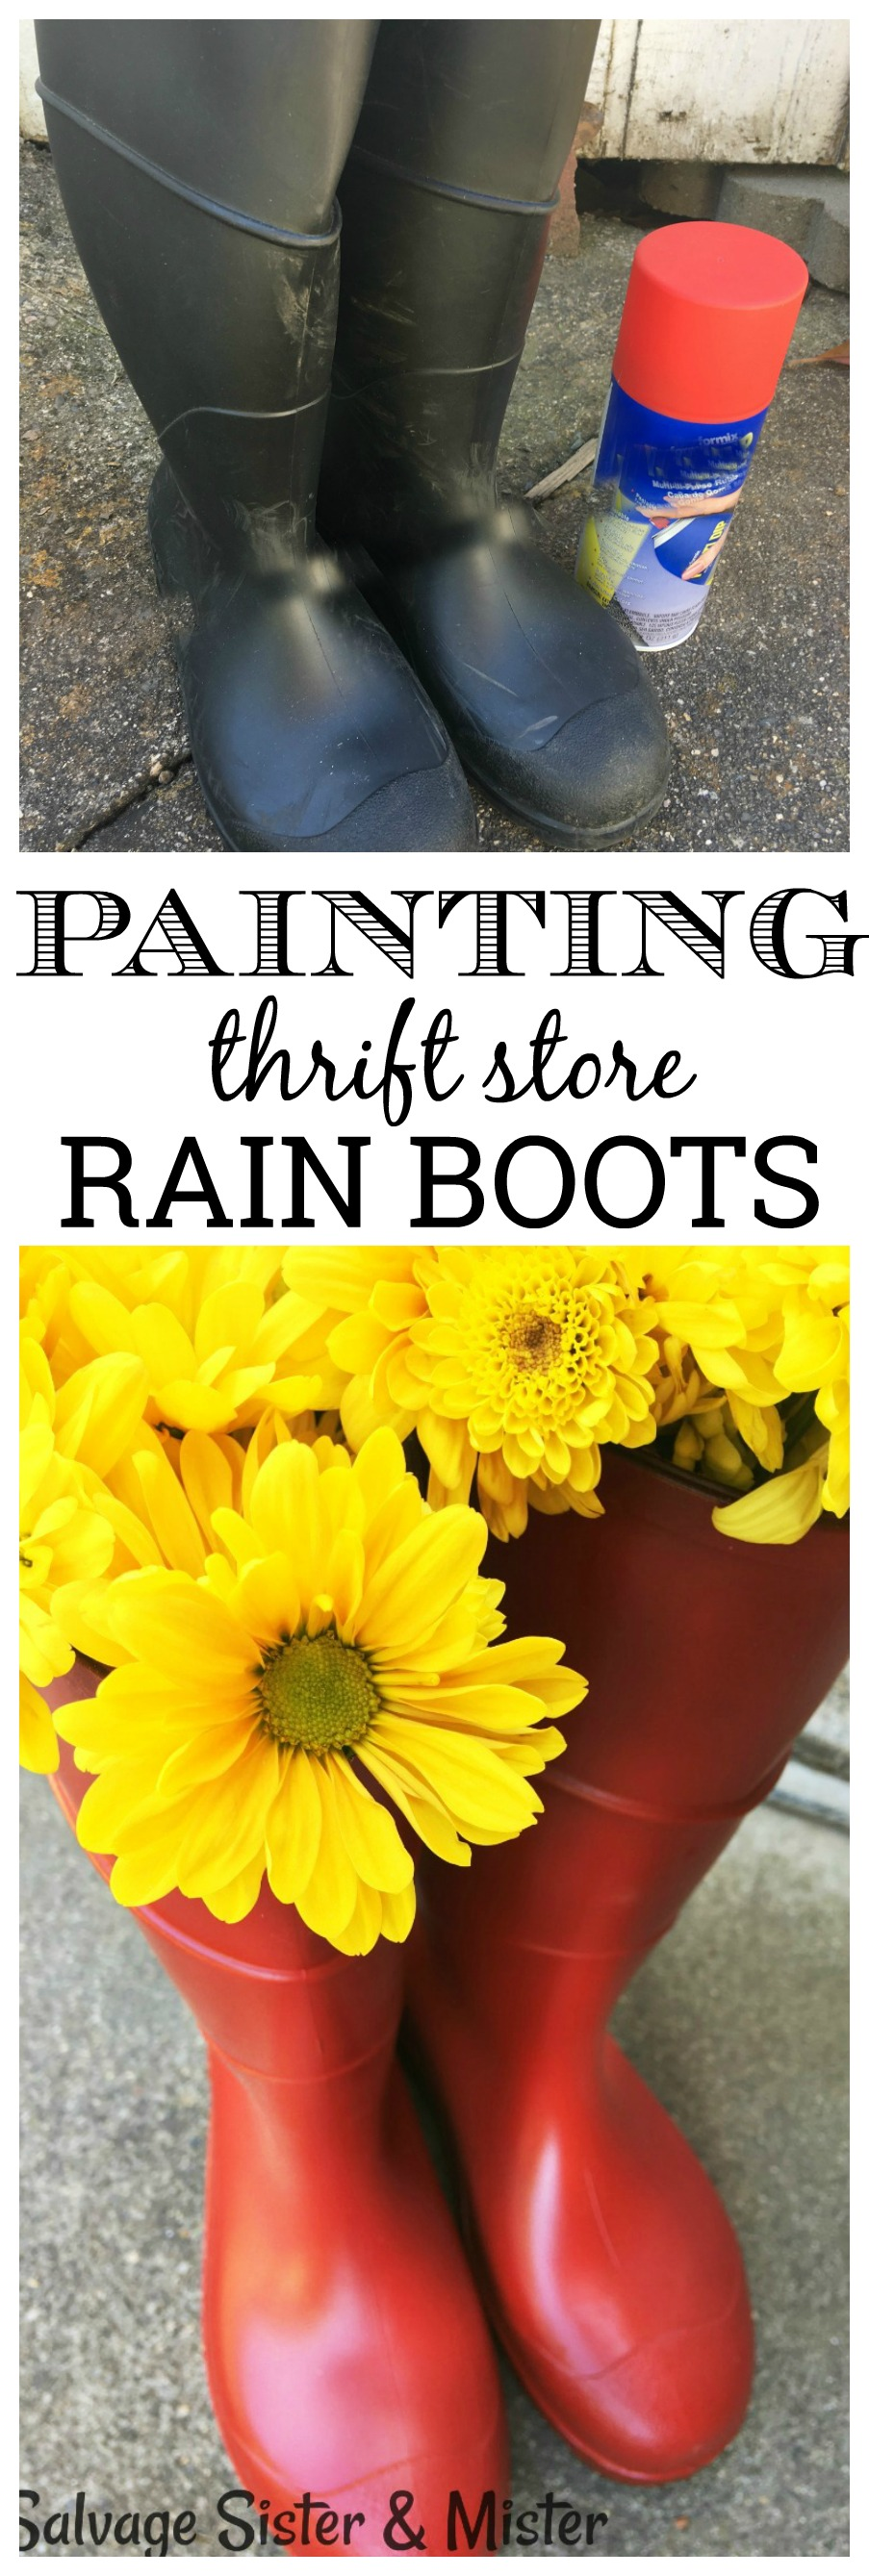 Do you have some old rain boots you would like to update? Or do you want to copy the Hunter Boot trend in farmhouse home decor? Boots, to wear or to use for decoration, can be updated with just a little of the RIGHT paint. This diy project is easy to do and way cheaper than purchasing new ones.